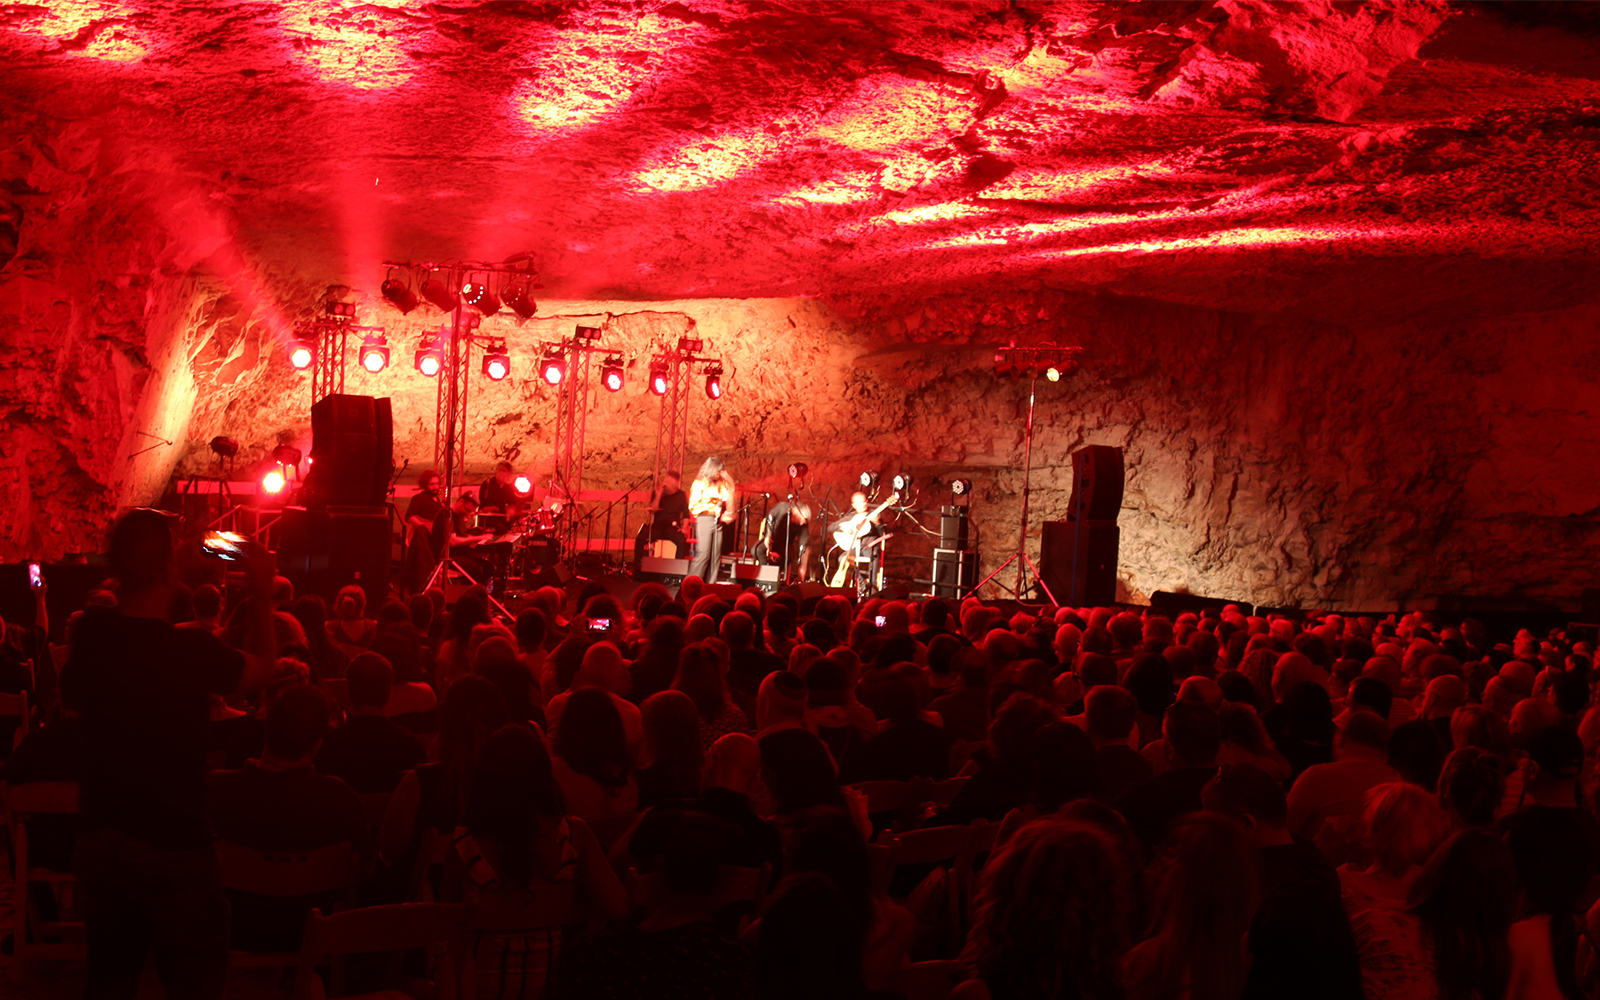 A concert held inside Zedekiah's Cave. The cave was used as a quarry in ancient times. (Shmuel Bar-Am)